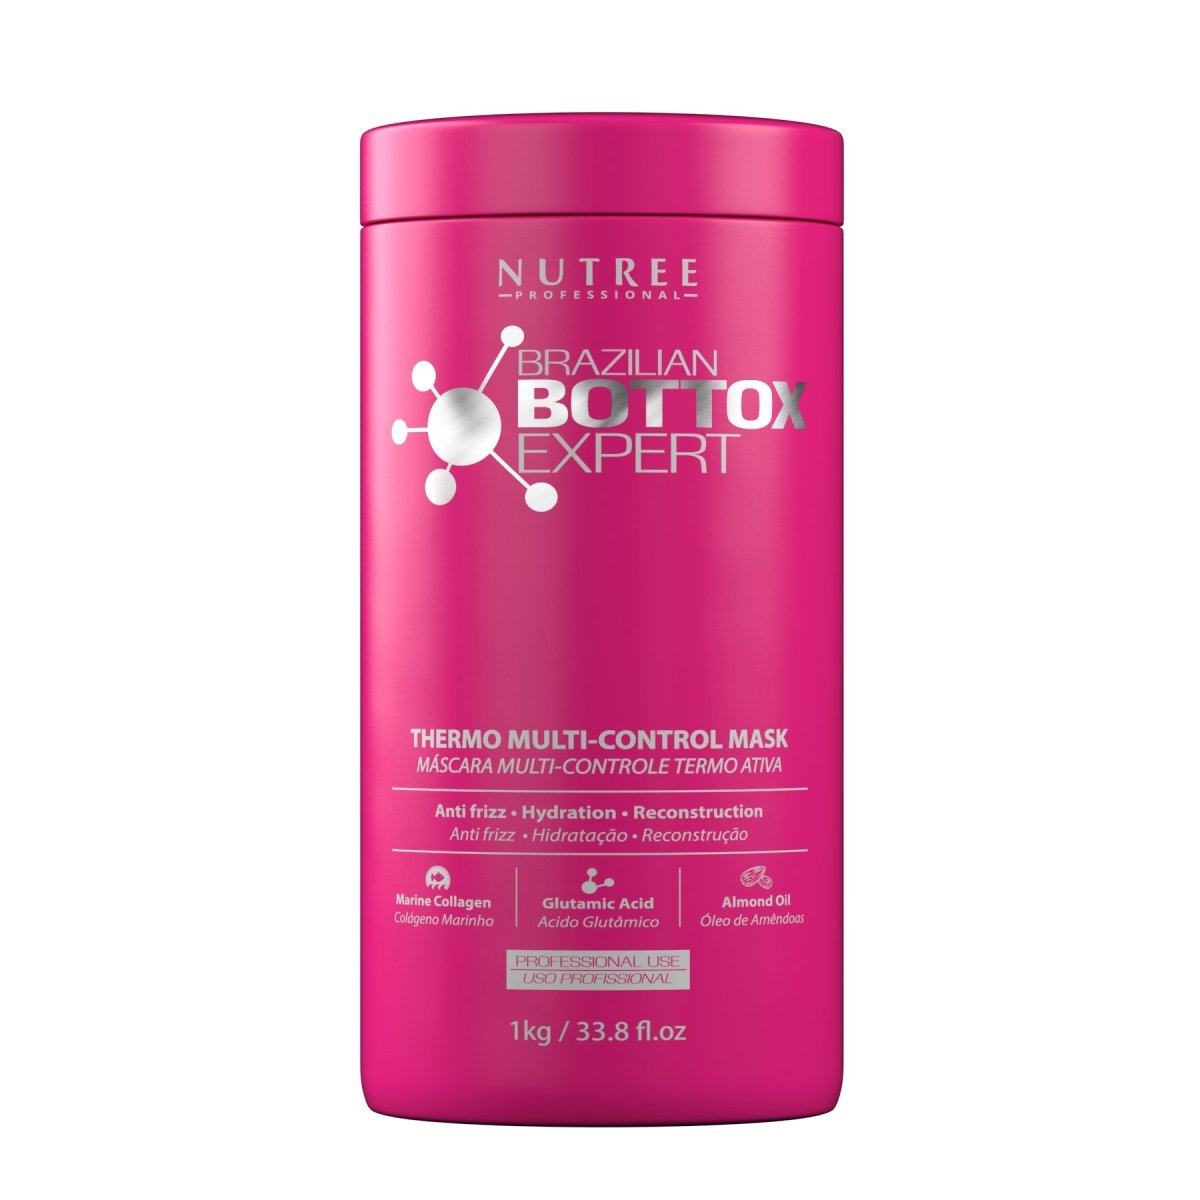 Brazilian Hair Bottox Expert Thermal Mask 33.8 fl.oz / 1 KG for all hair colors - Nutree Cosmetics property of 365 SUN LLC.